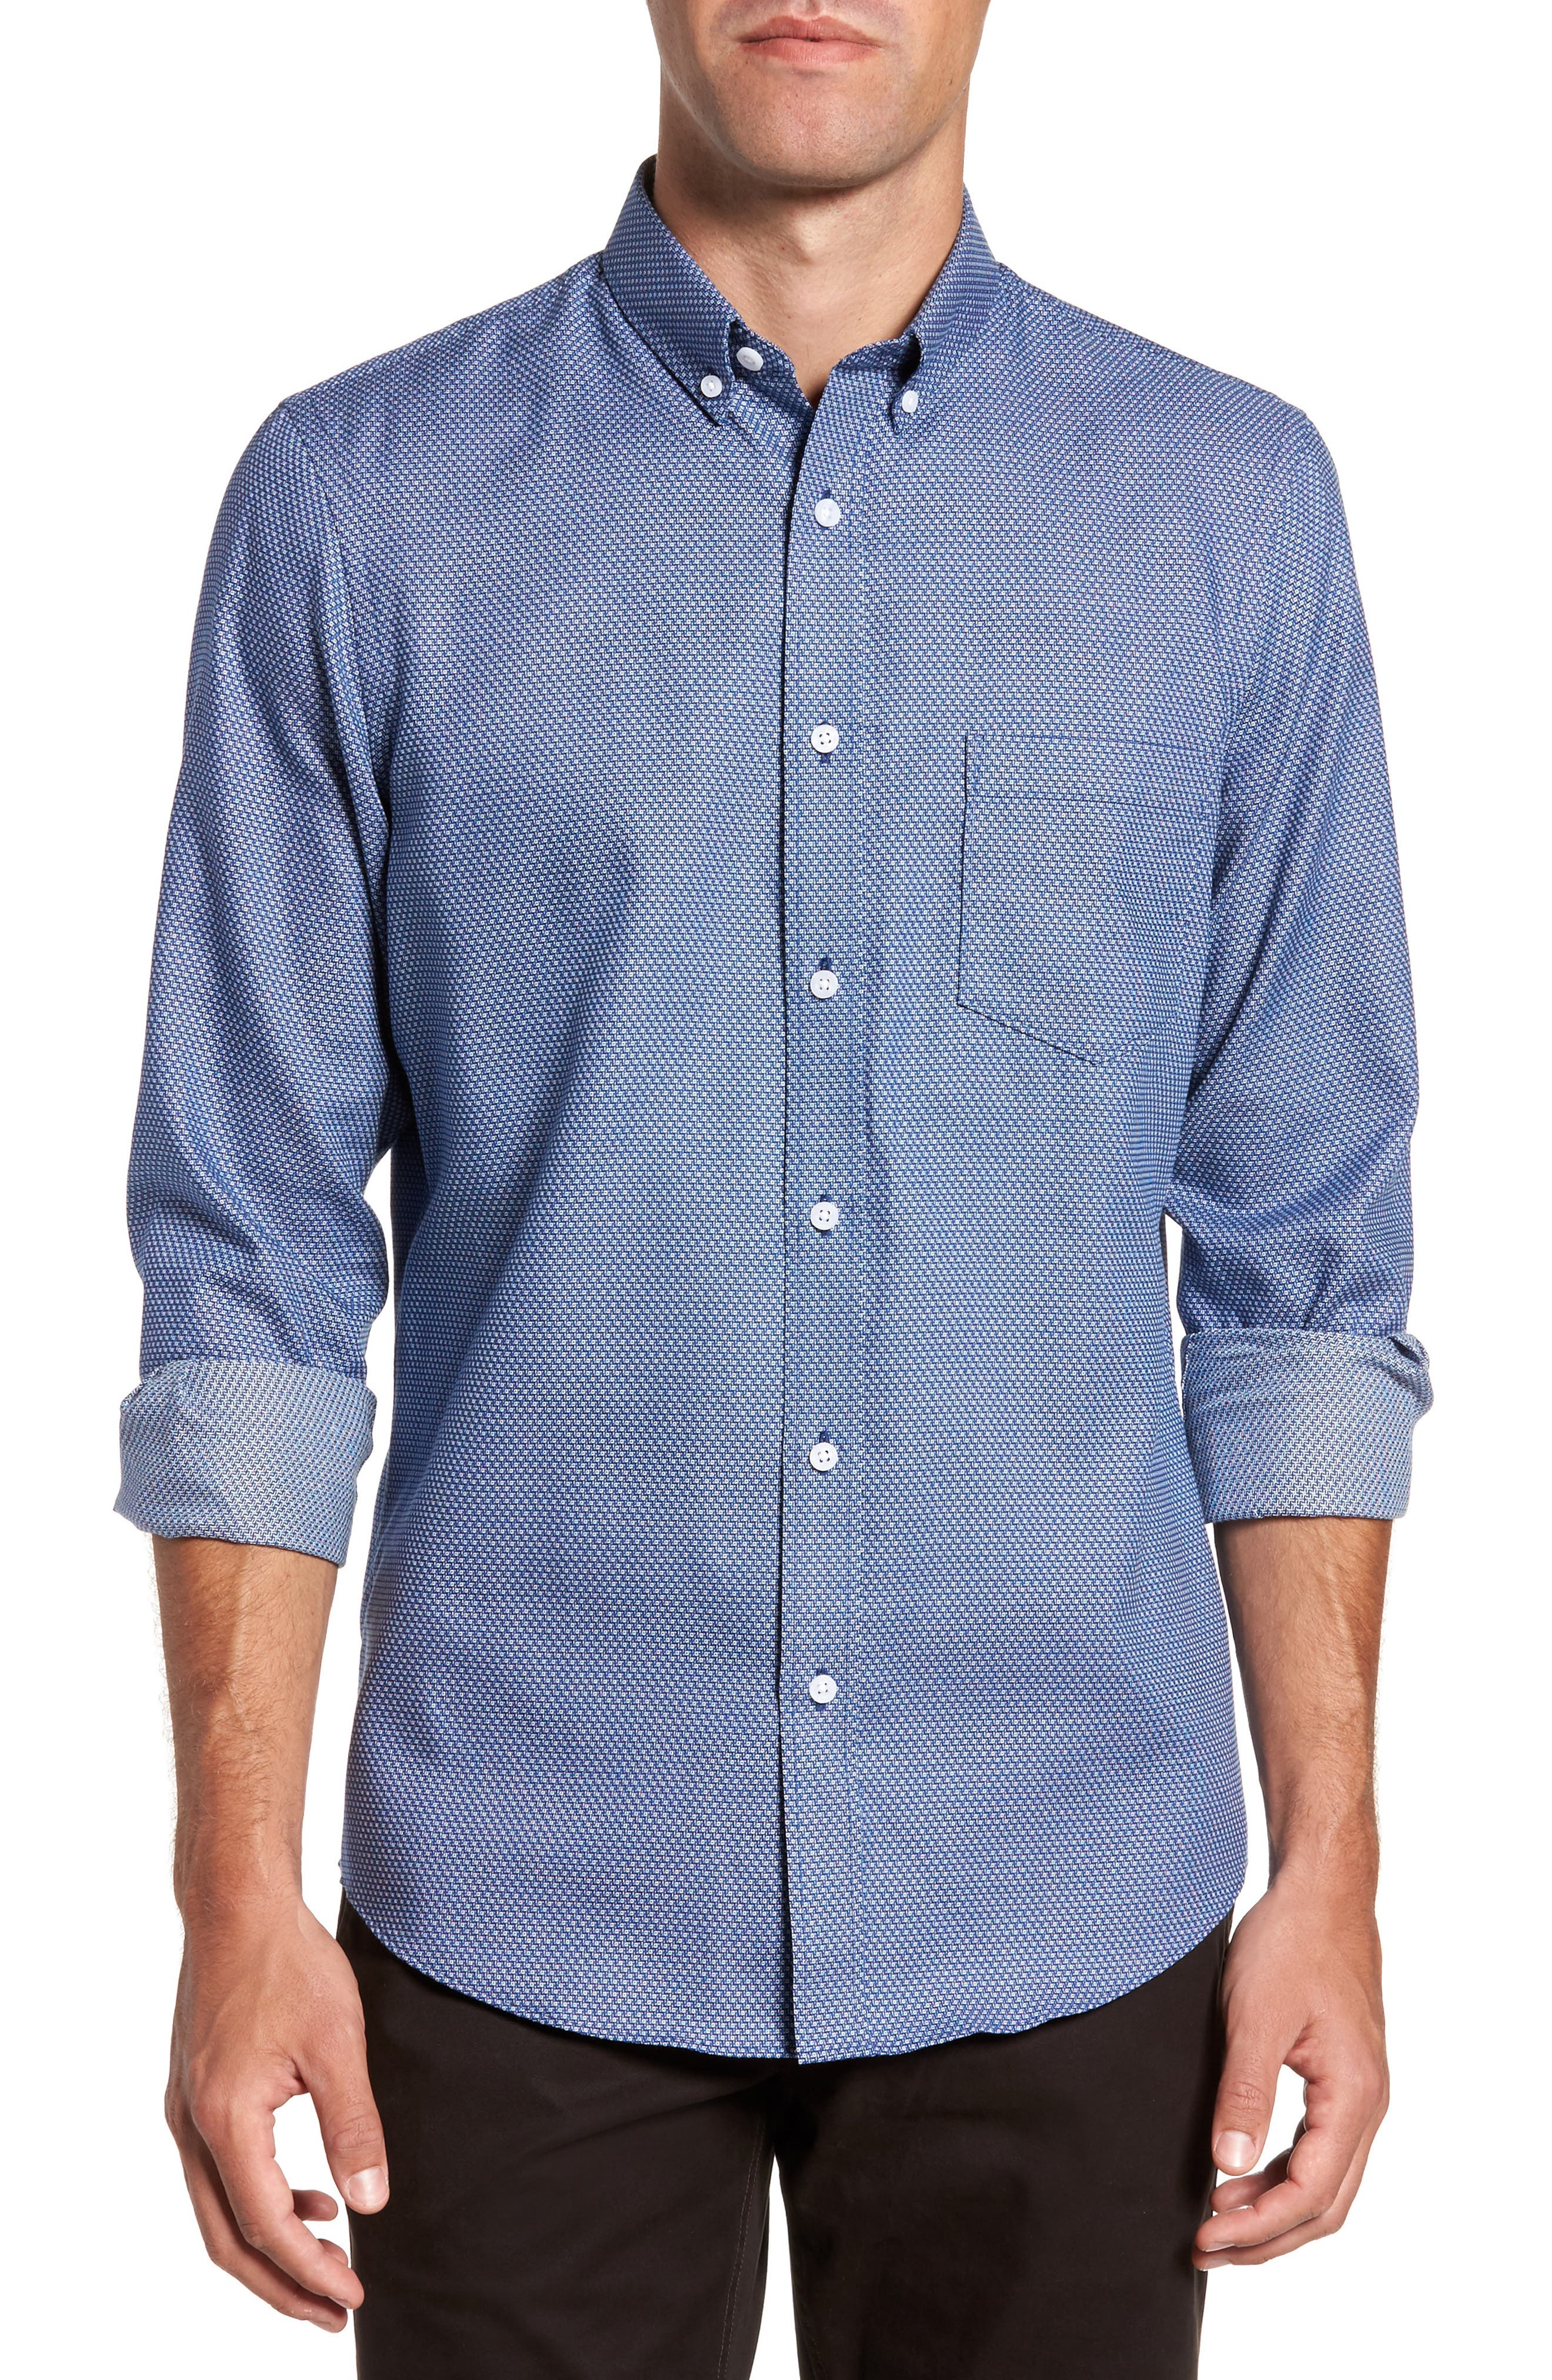 Nordstrom Men's Shop Non-Iron Regular Fit Print Sport Shirt (Tall)